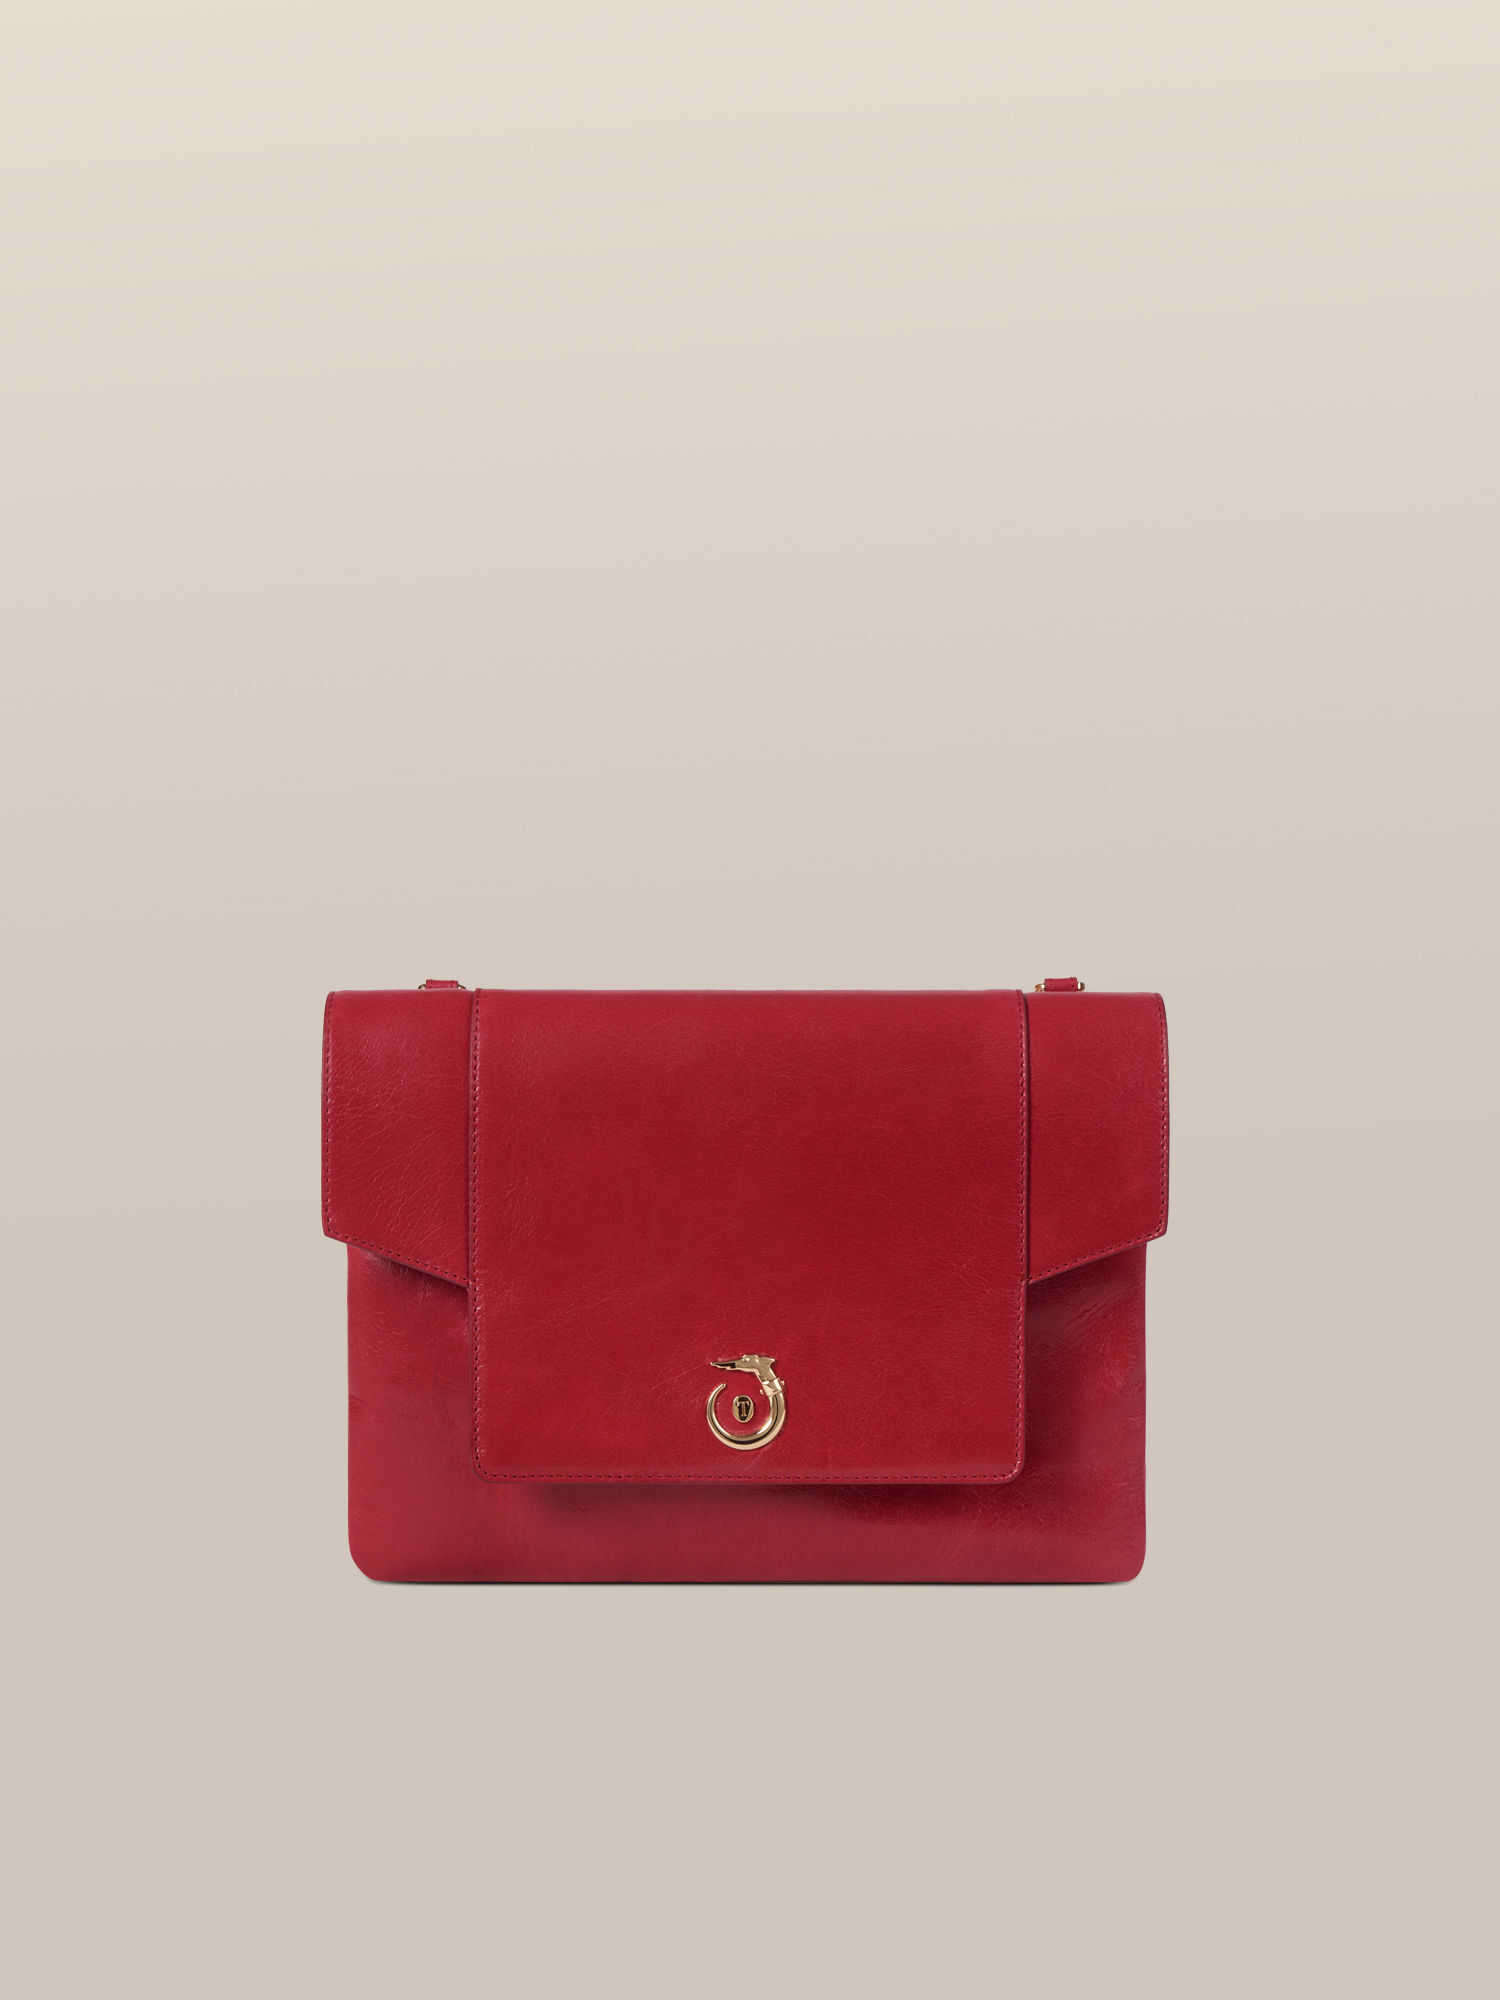 Trussardi ® Clothing for Women and Men